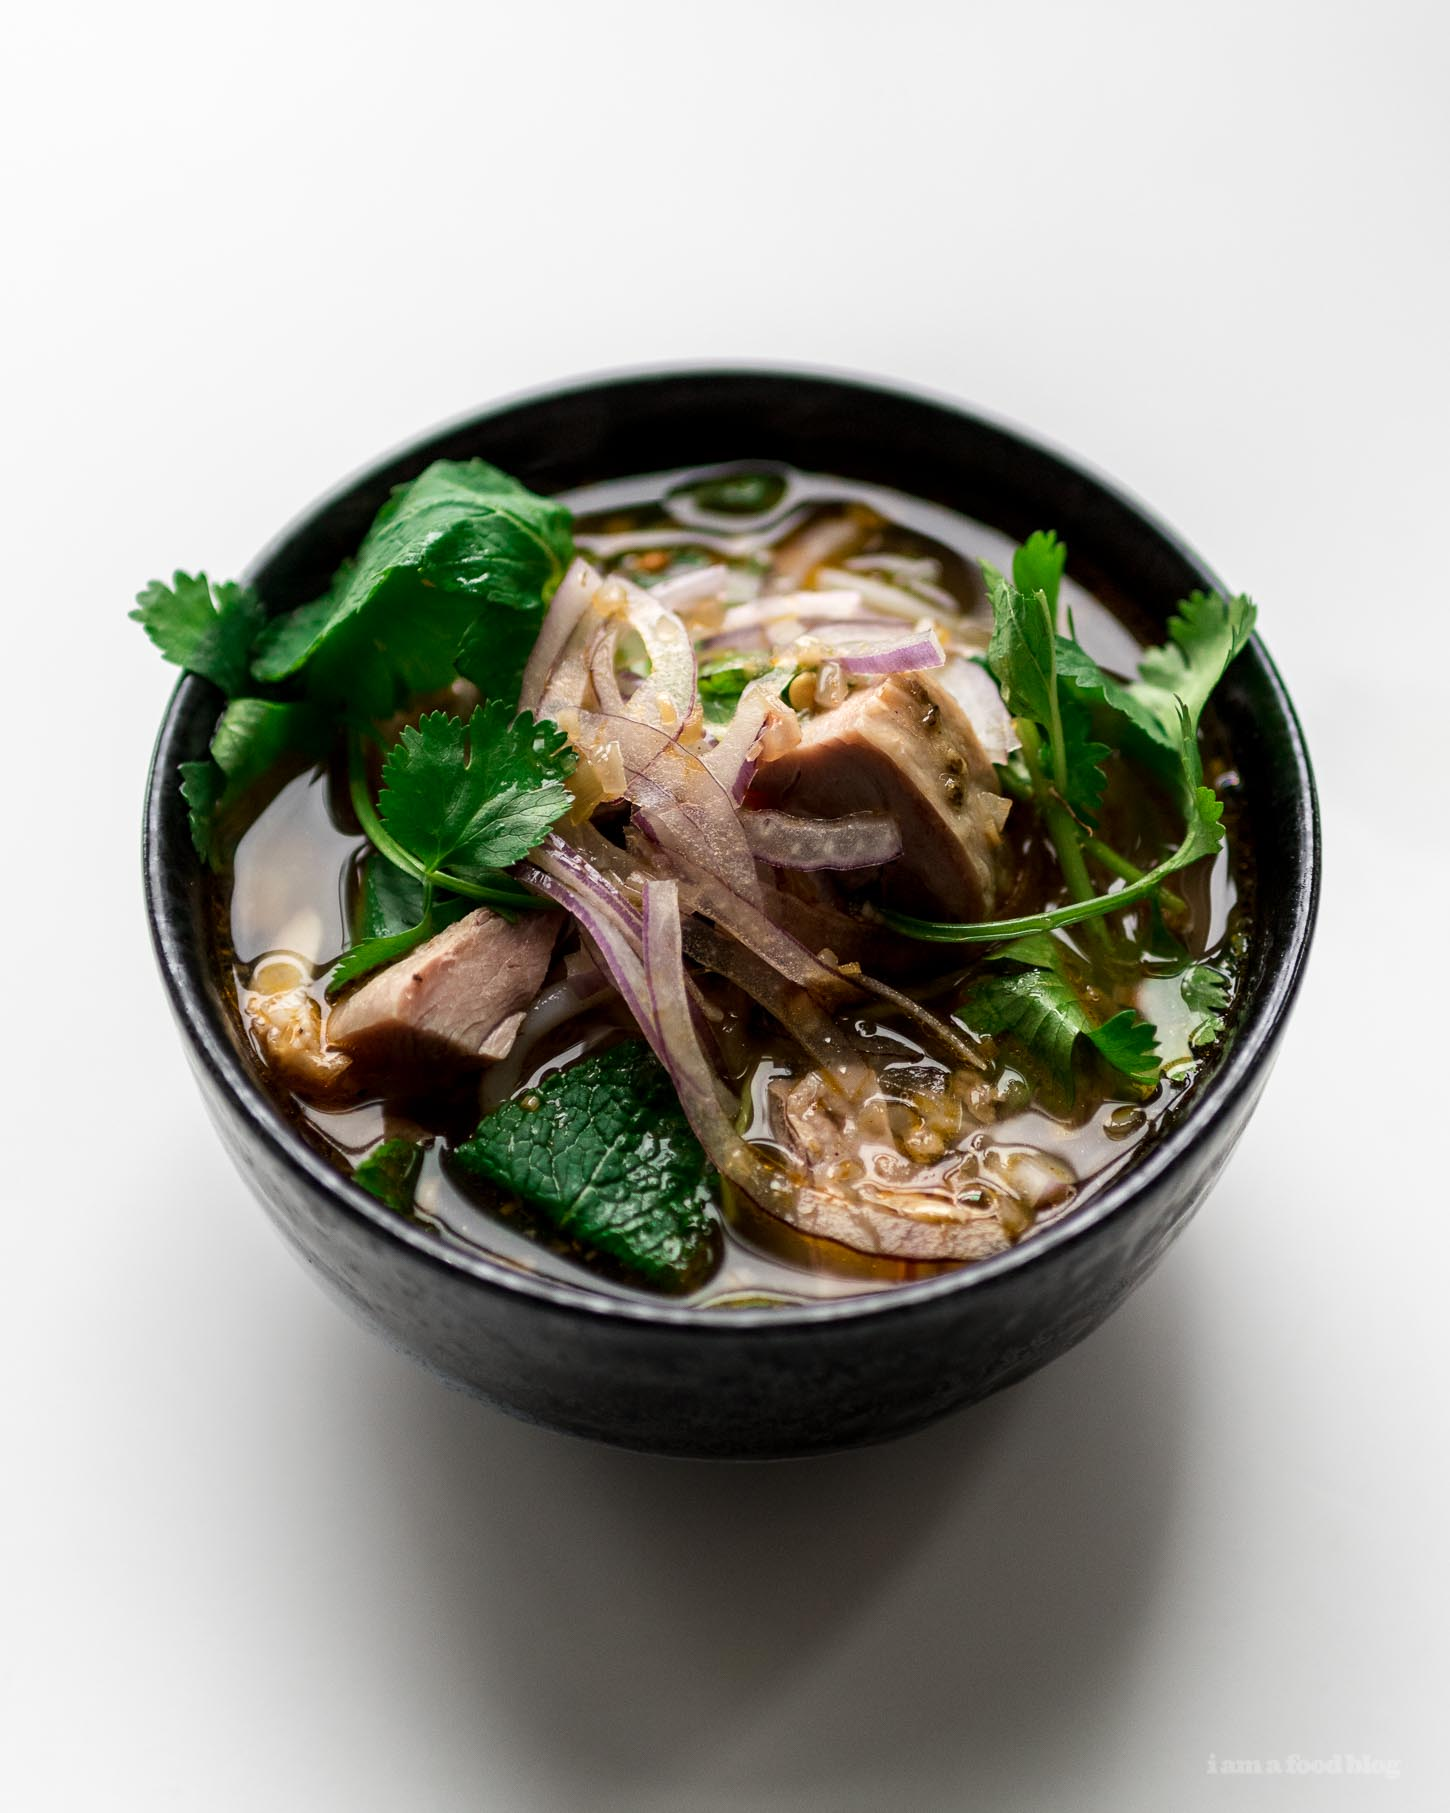 Hue Style Spicy Turkey Vermicelli Noodle Soup Recipe | www.iamafoodblog.com